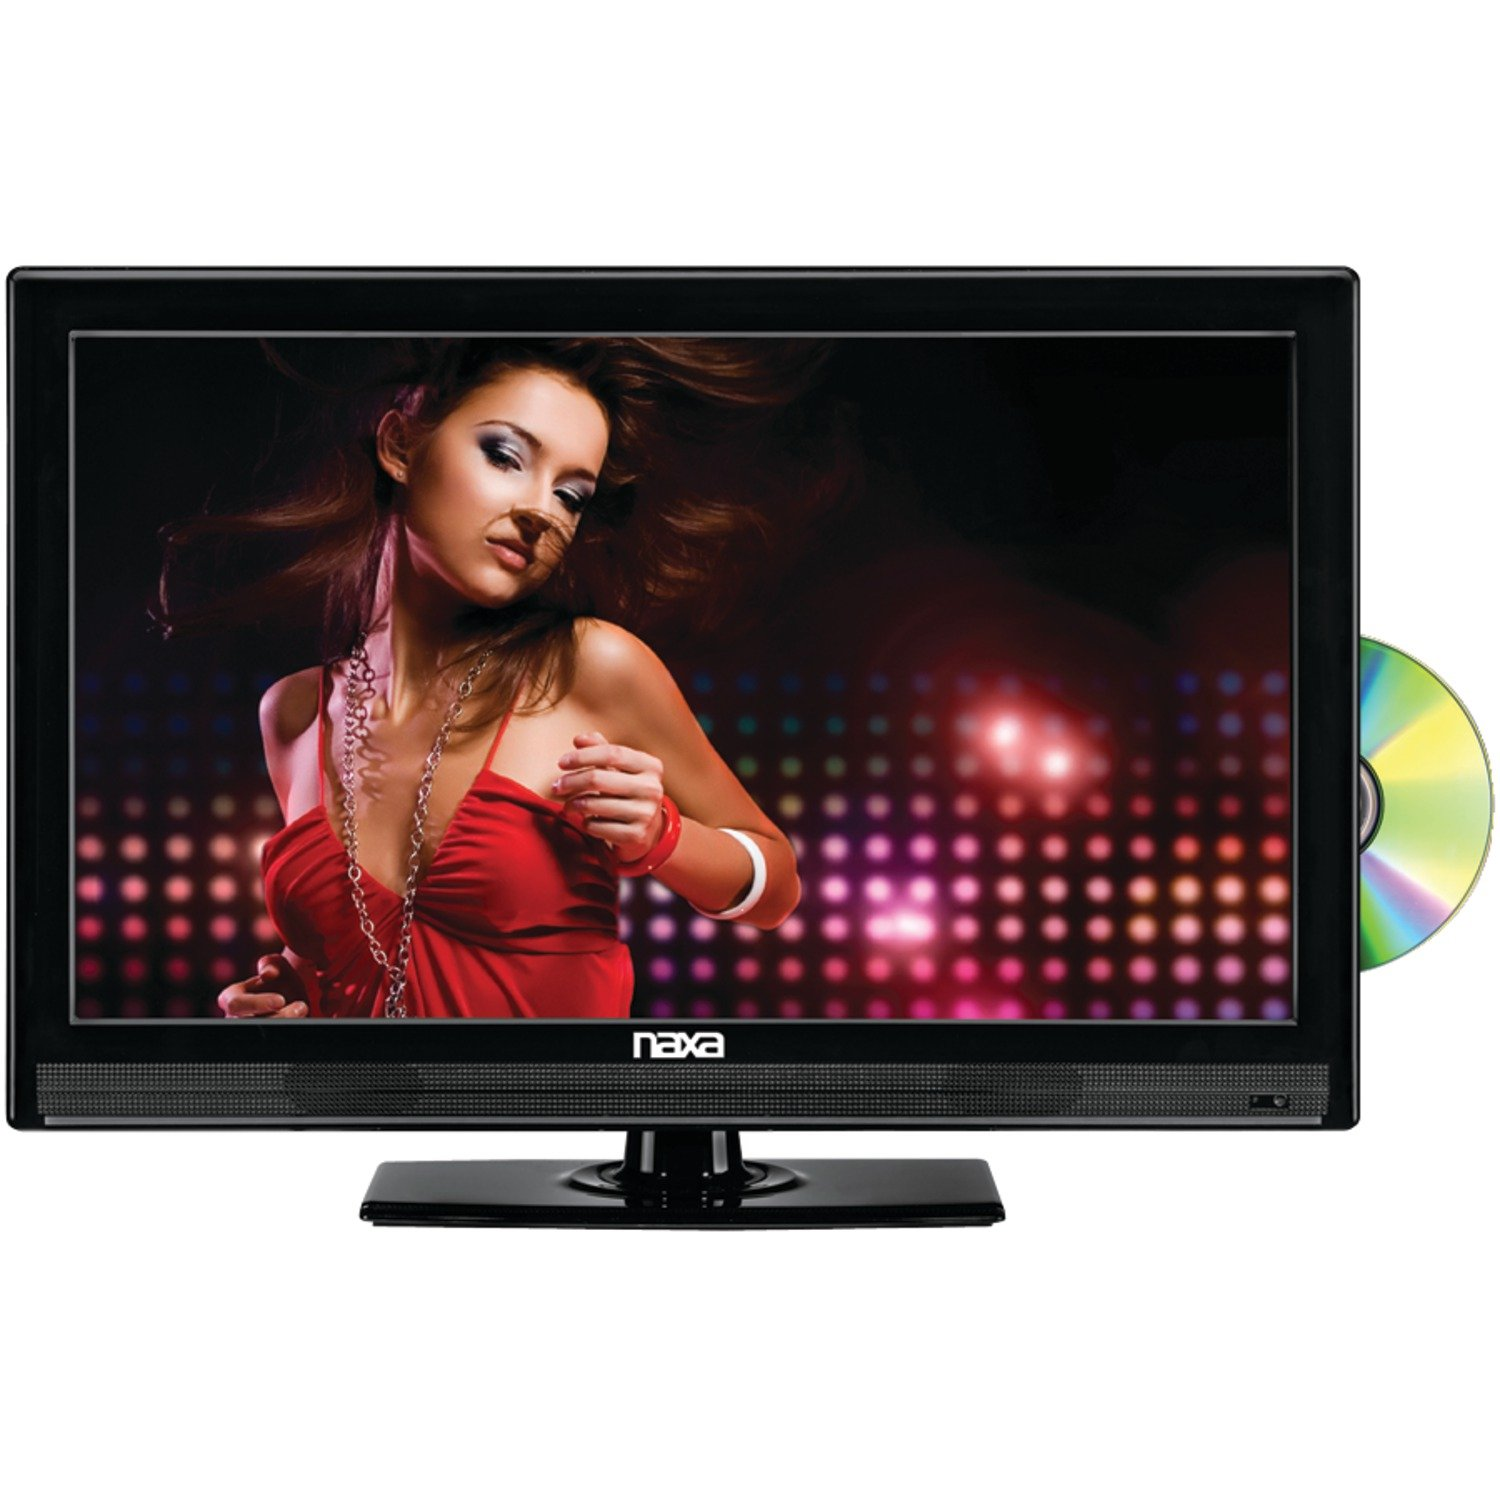 NAXA Electronics NTD-1954 19-Inch LED HDTV with Built-in DVD Player